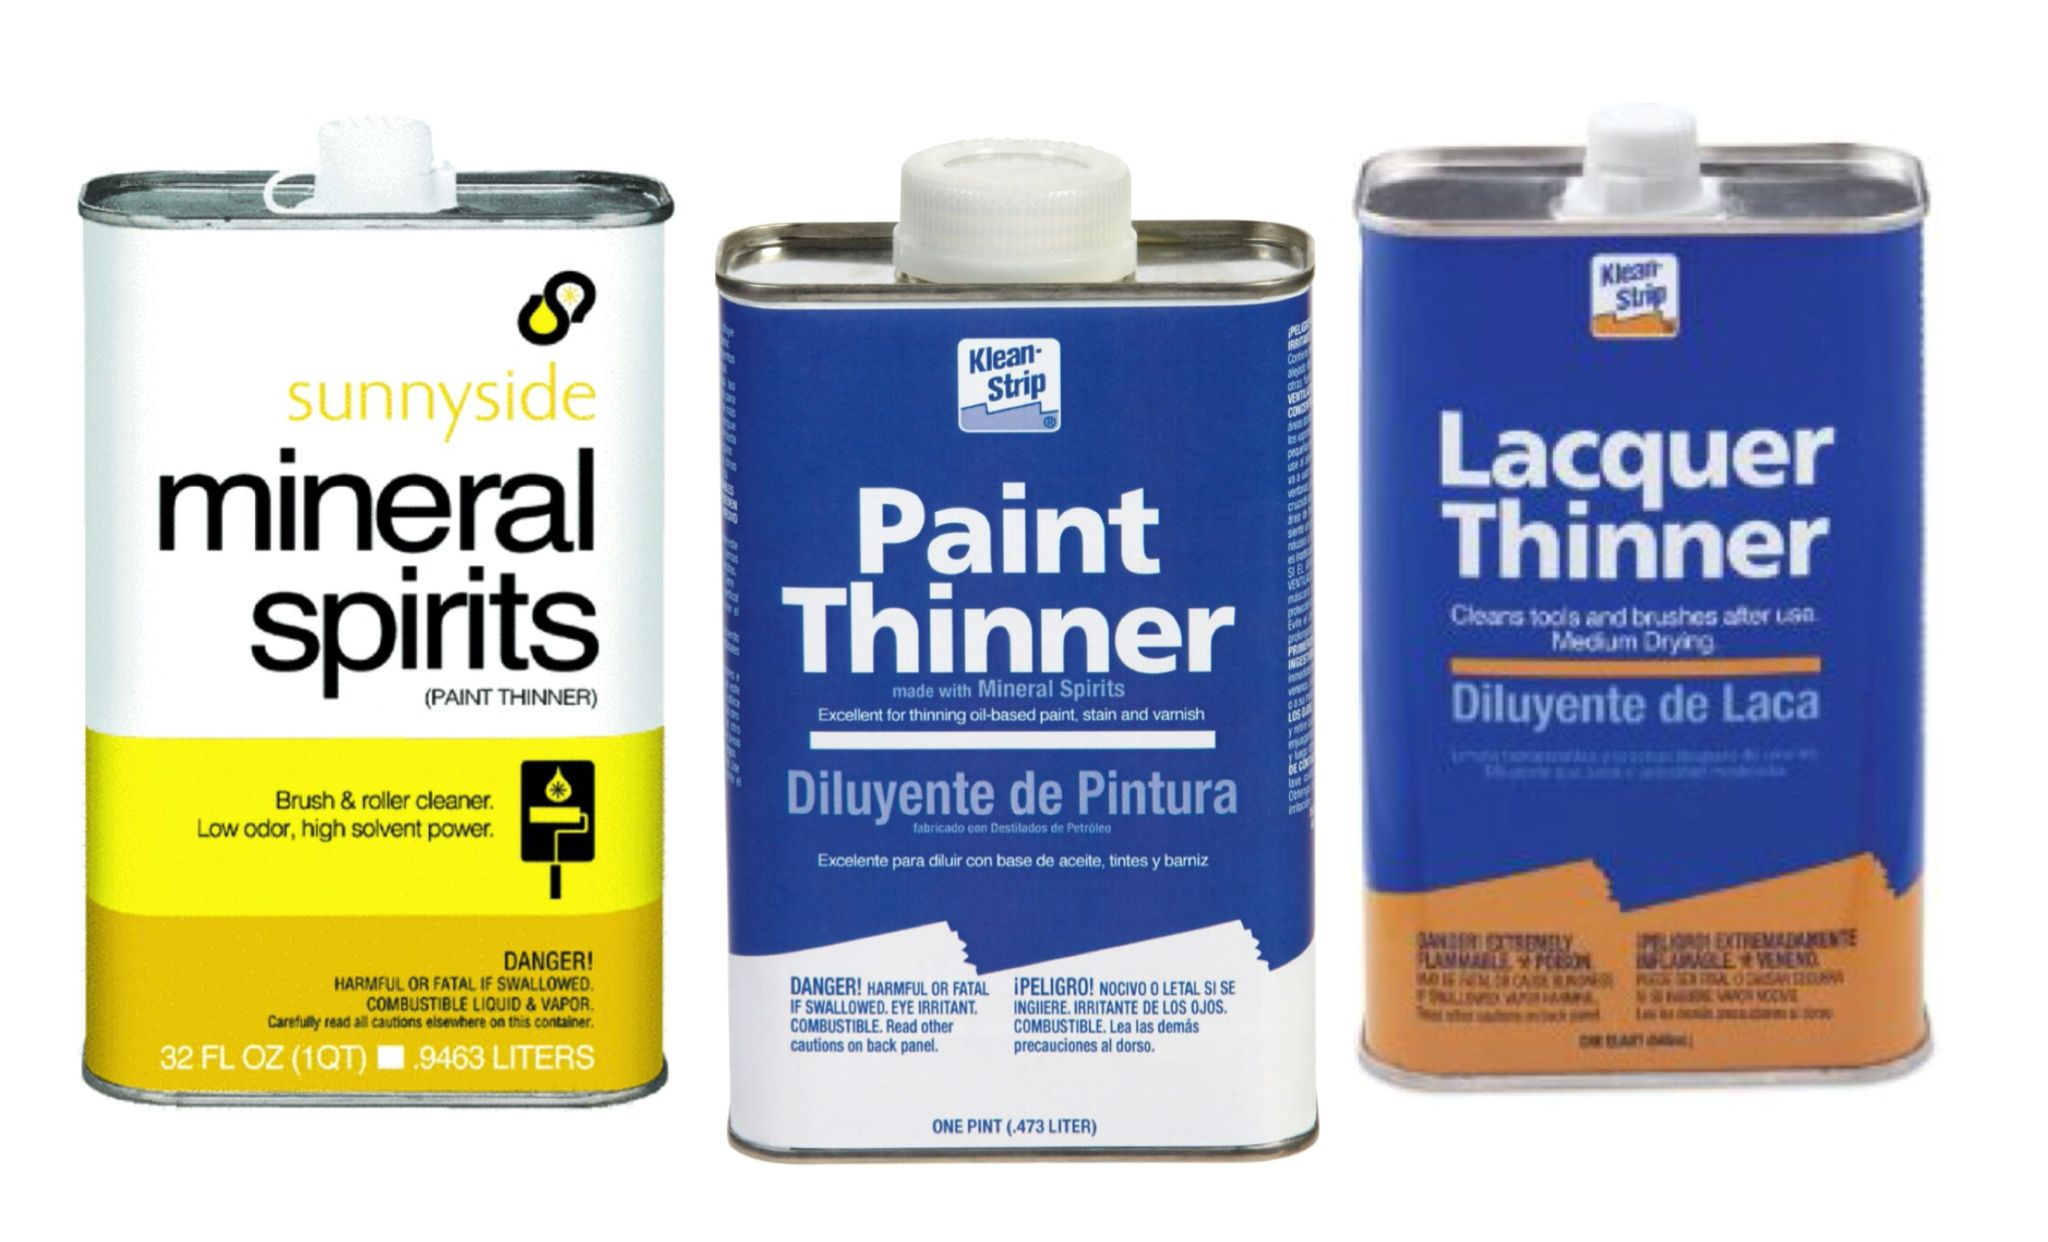 Difference Between Mineral Spirits Paint Thinner And Lacquer Thinner Via Refinishingfurniture Net Paint Thinner Mineral Spirits Lacquer